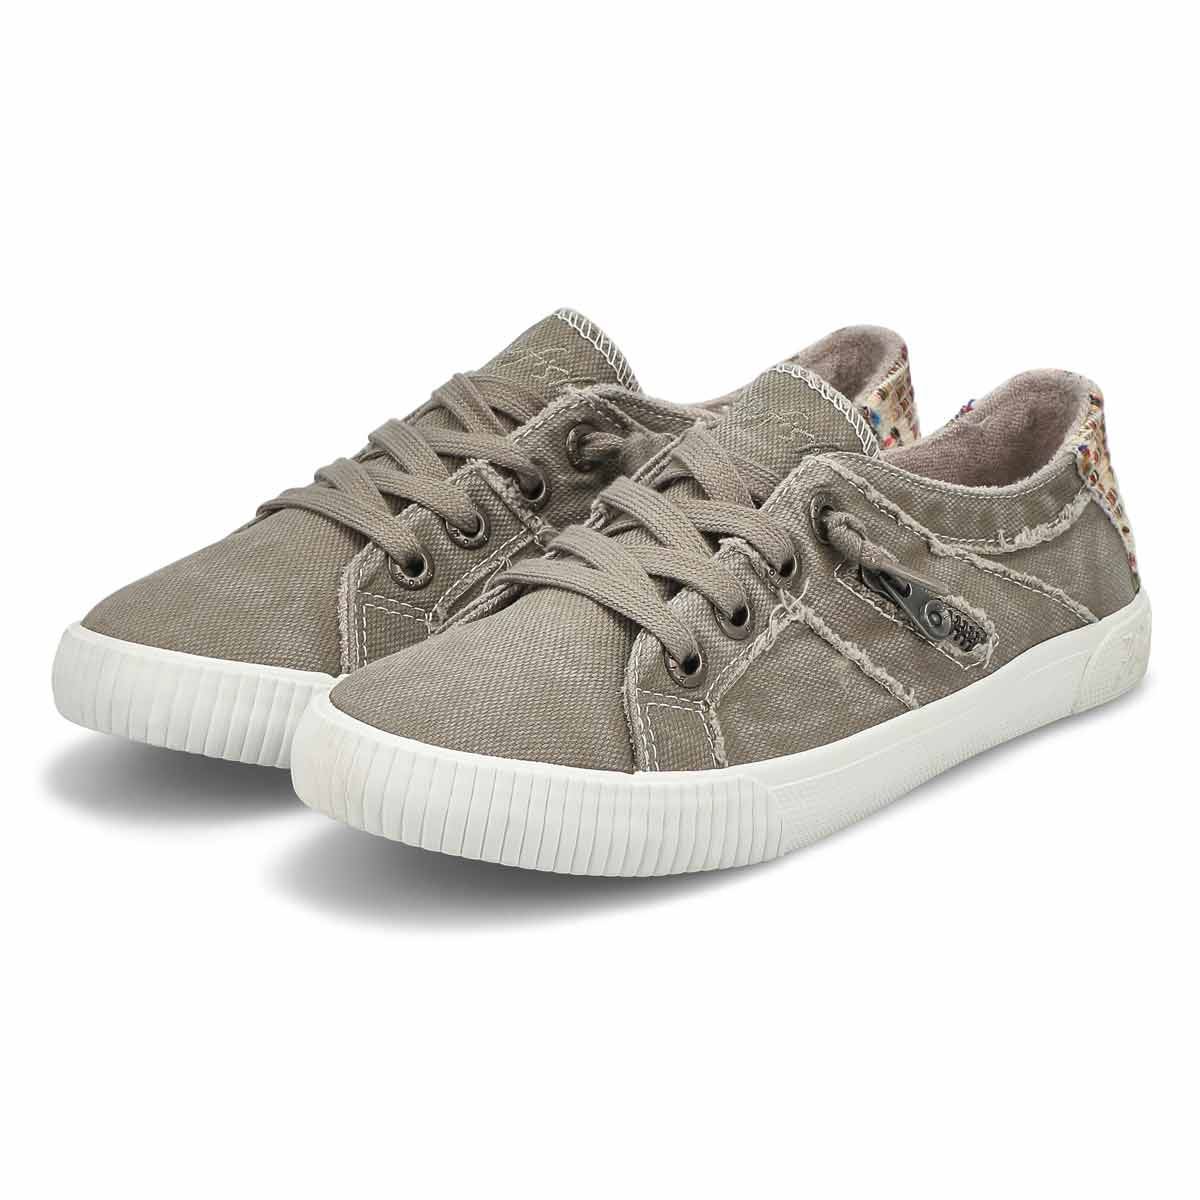 Lds Fruit grey lace up fashion sneakers